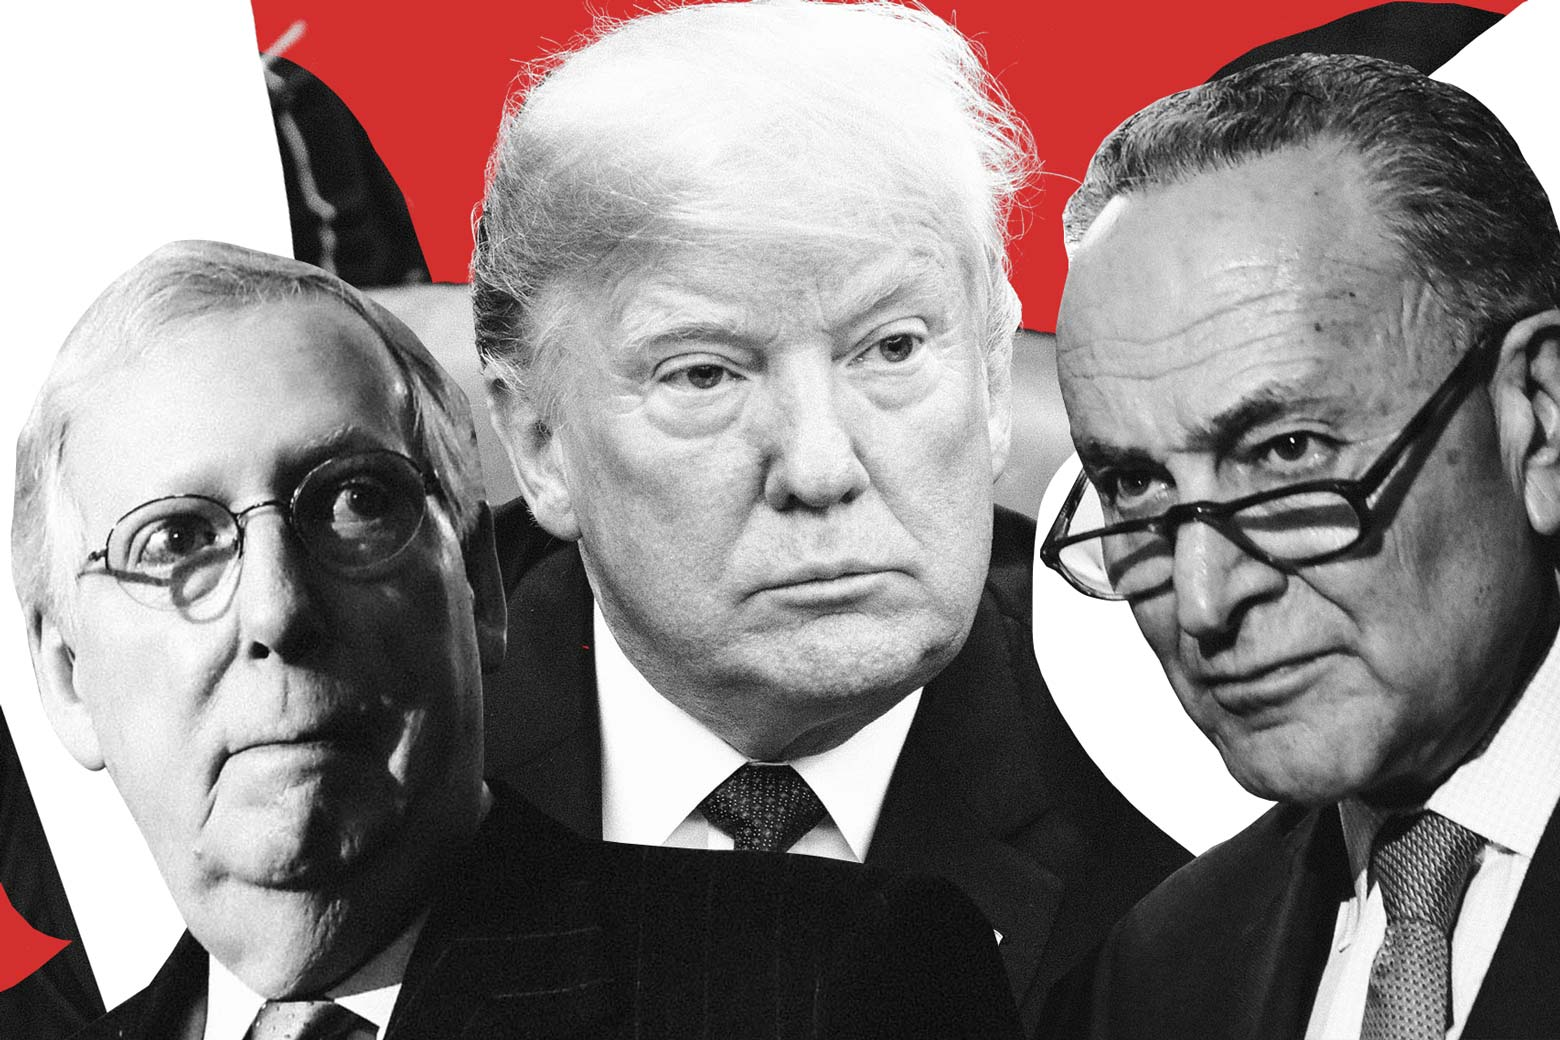 Mitch McConnell, Donald Trump, and Chuck Schumer portraits in black and white, photo-collaged next to each other on a red background.